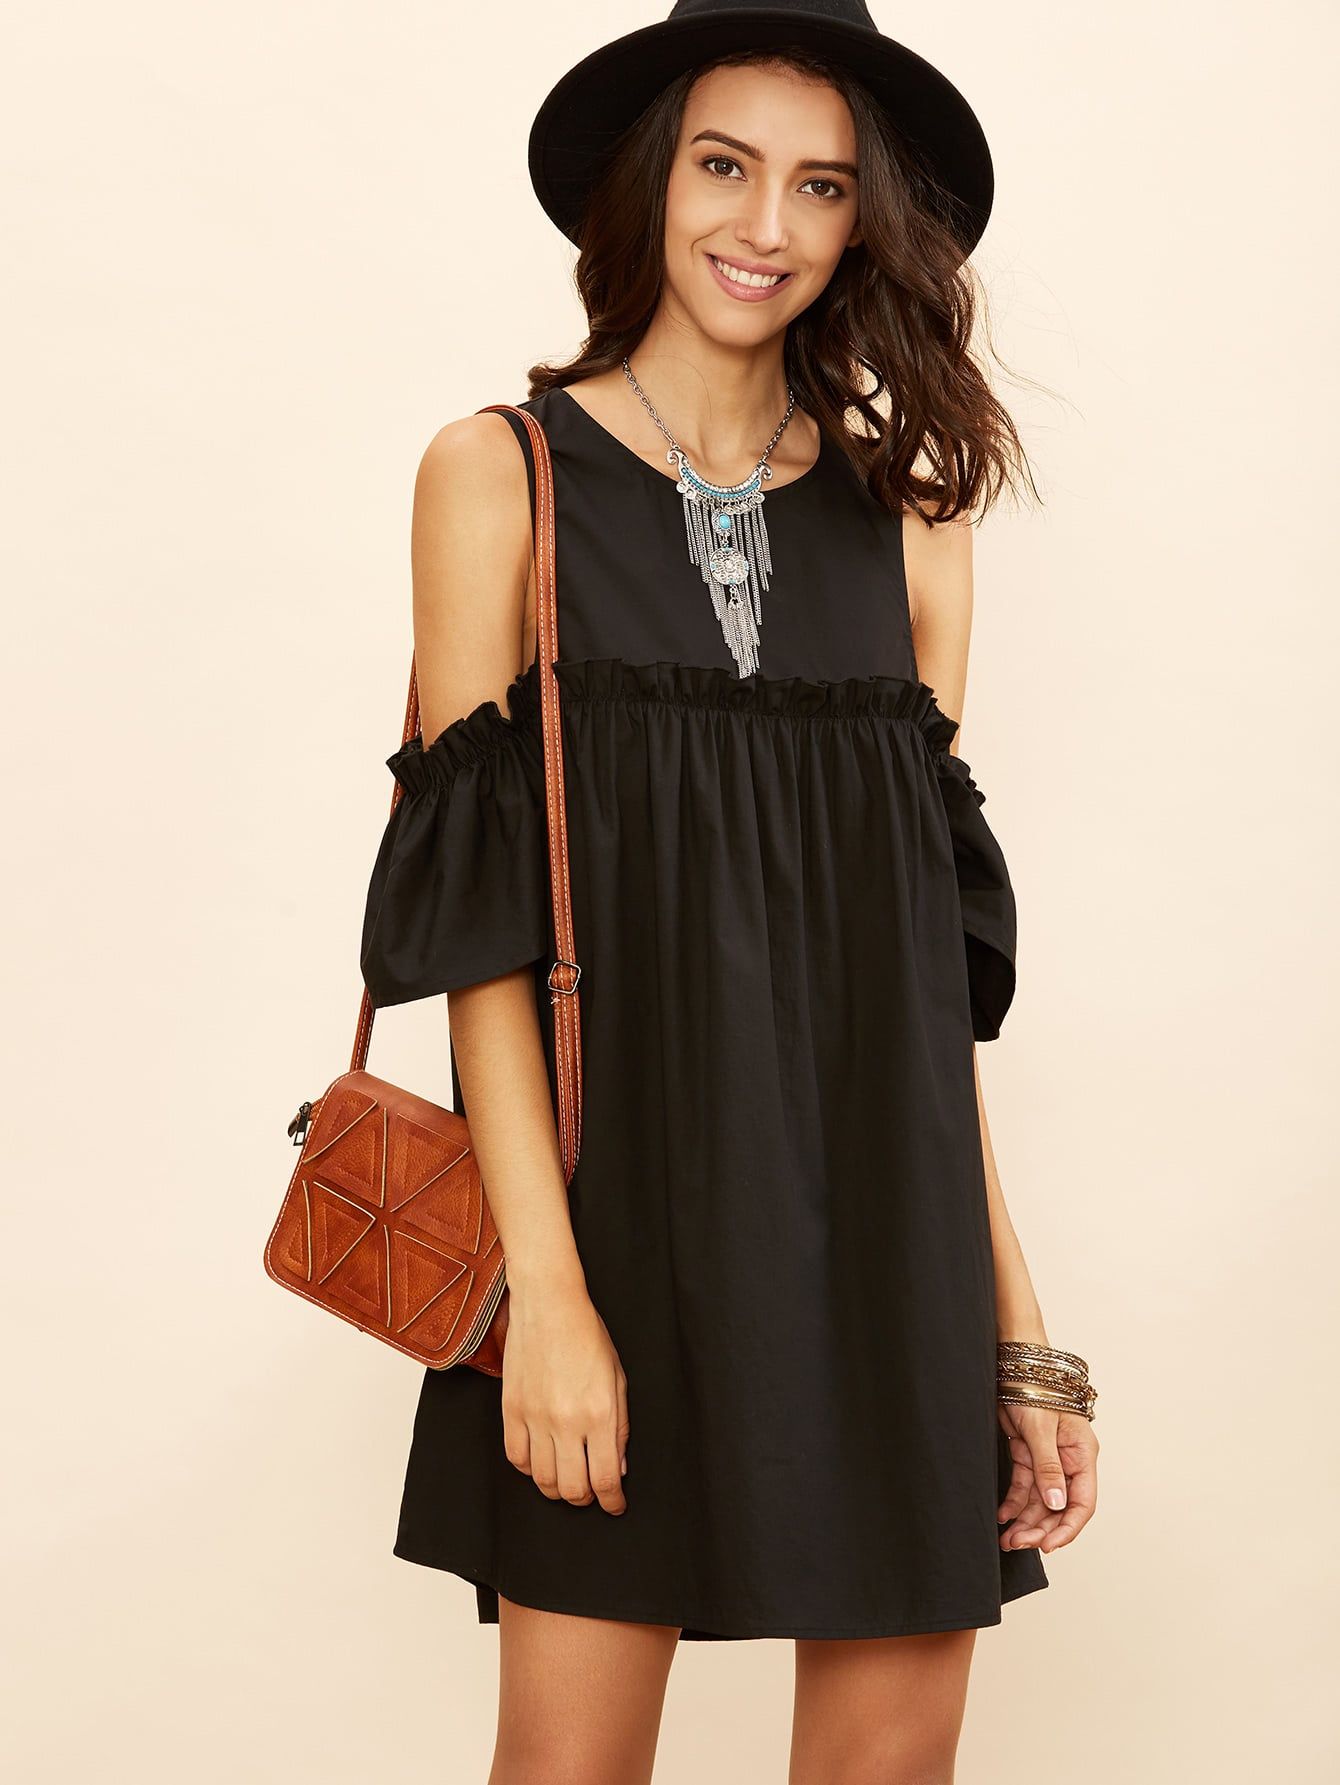 Black Cold Shoulder Frill Babydoll Dress dress160901701